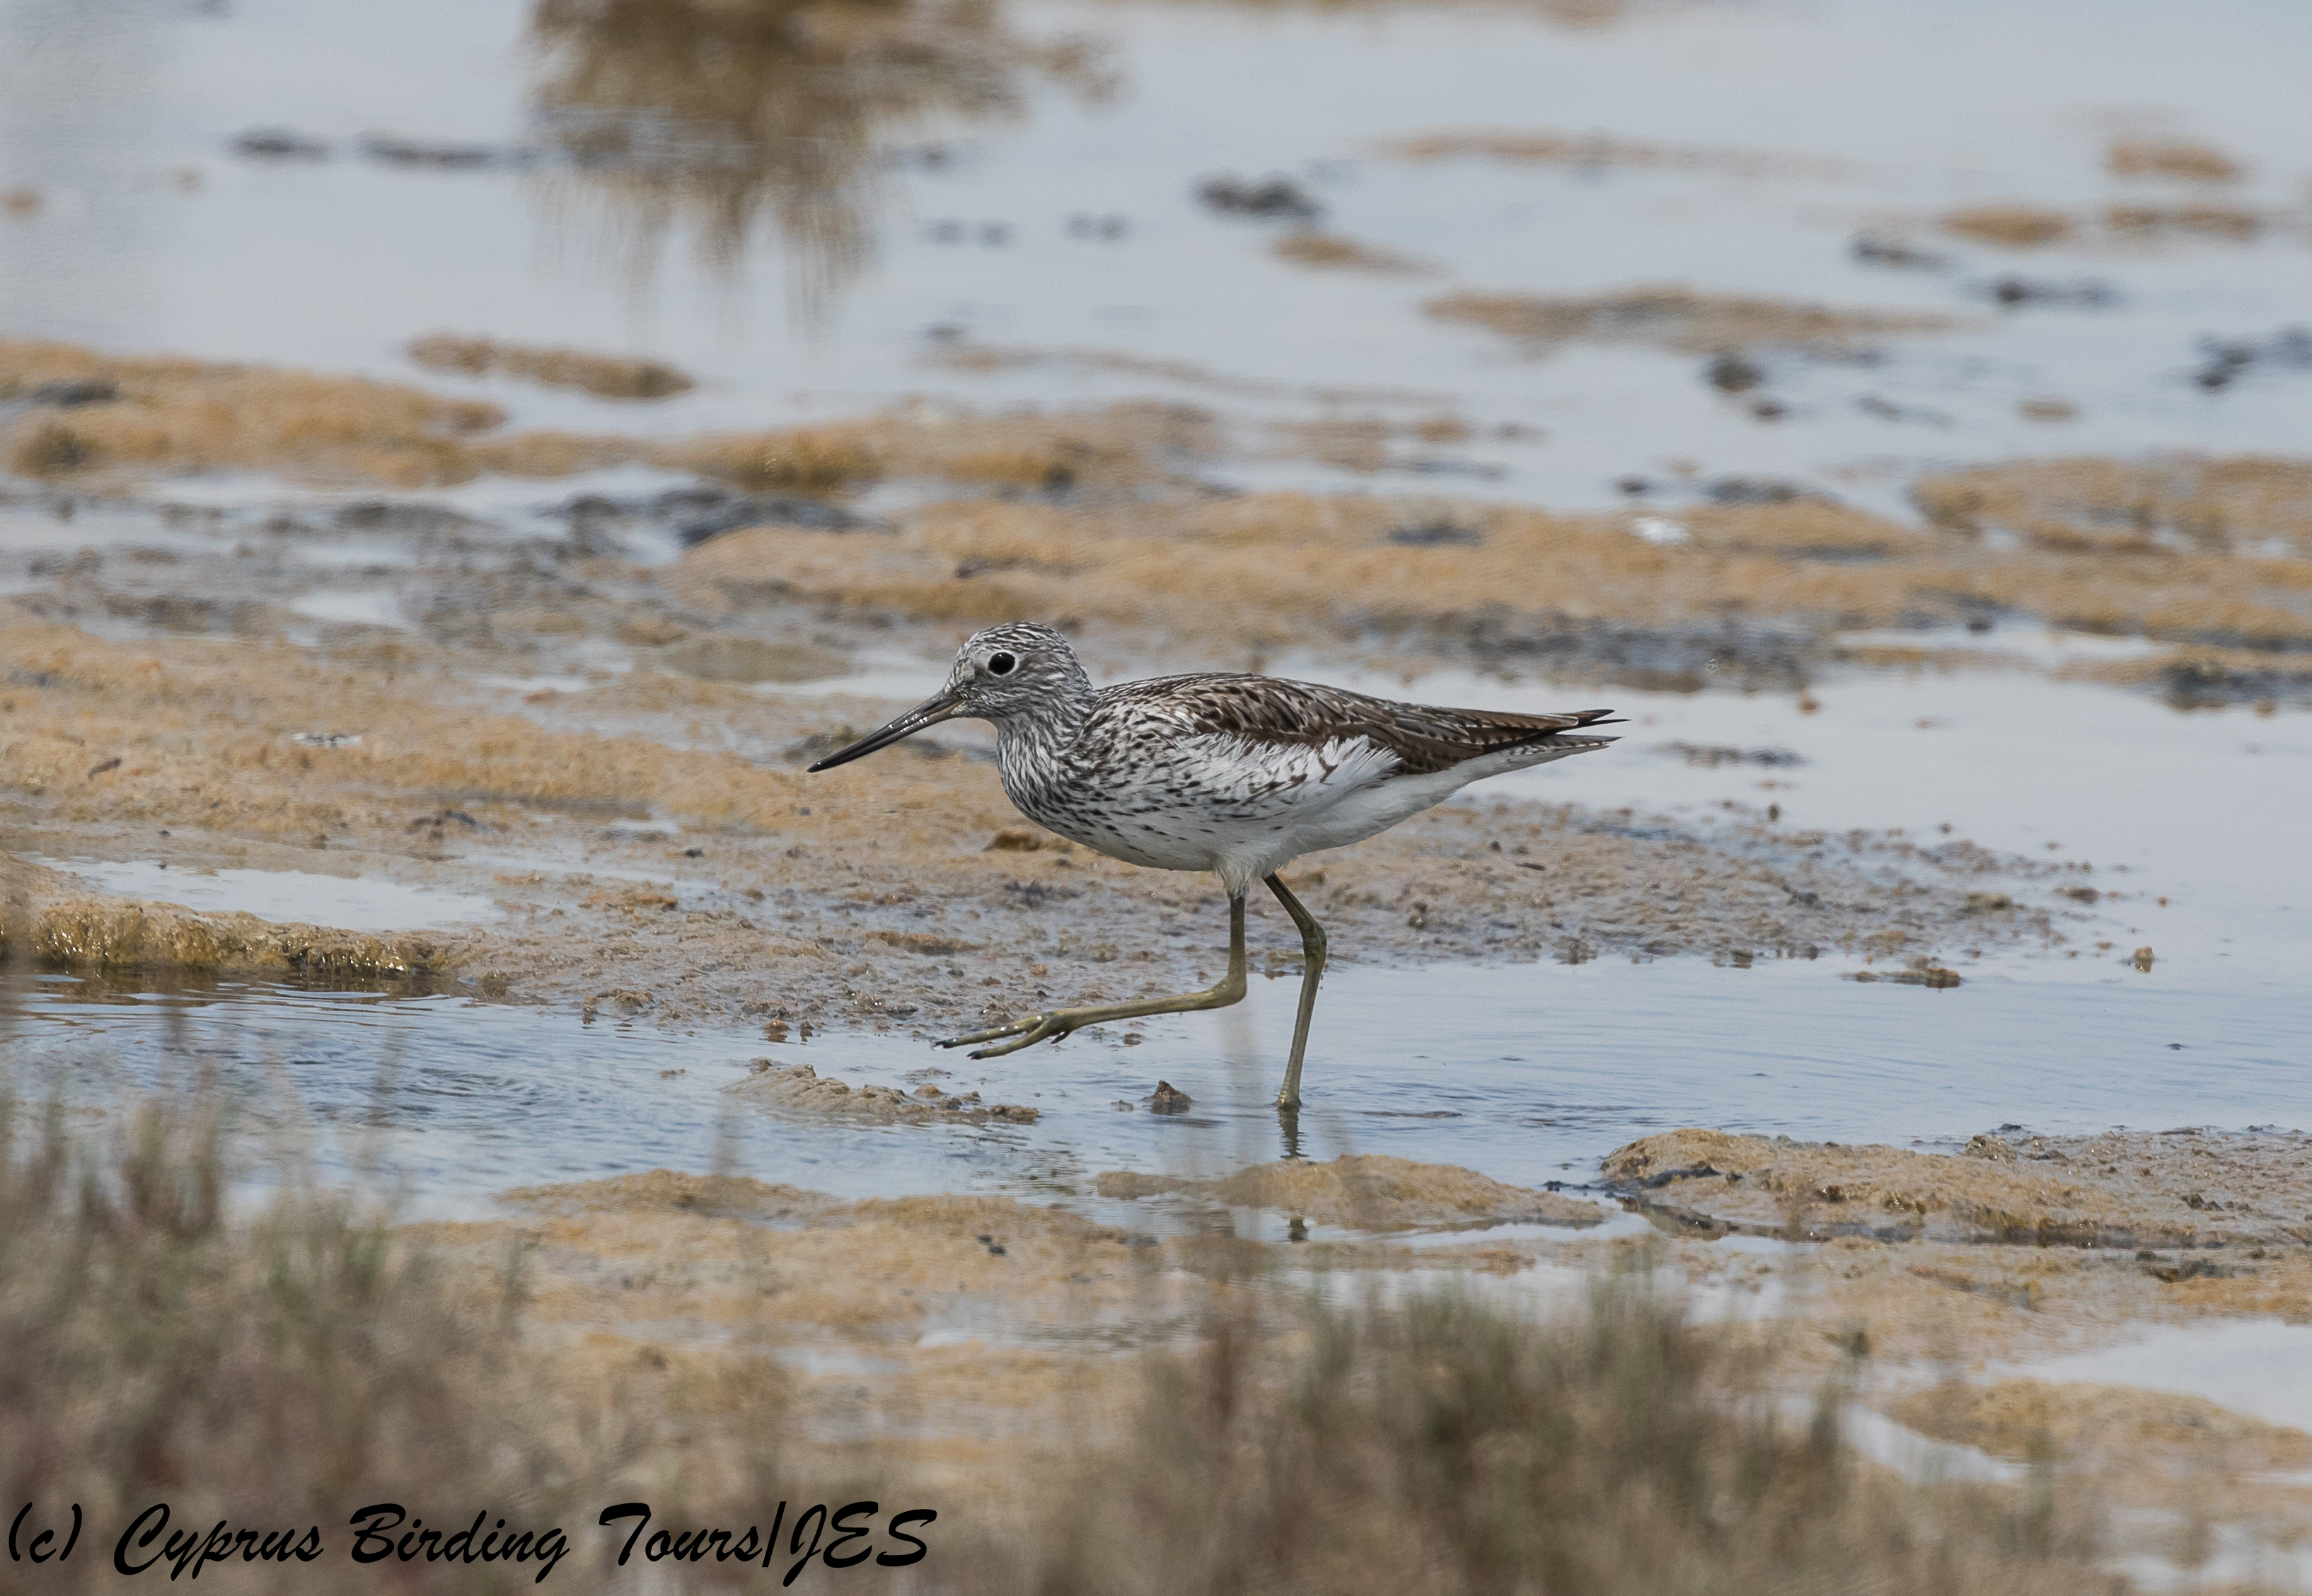 Common Greenshank, Lady's Mile 28th April 2018  (c) Cyprus Birding Tours